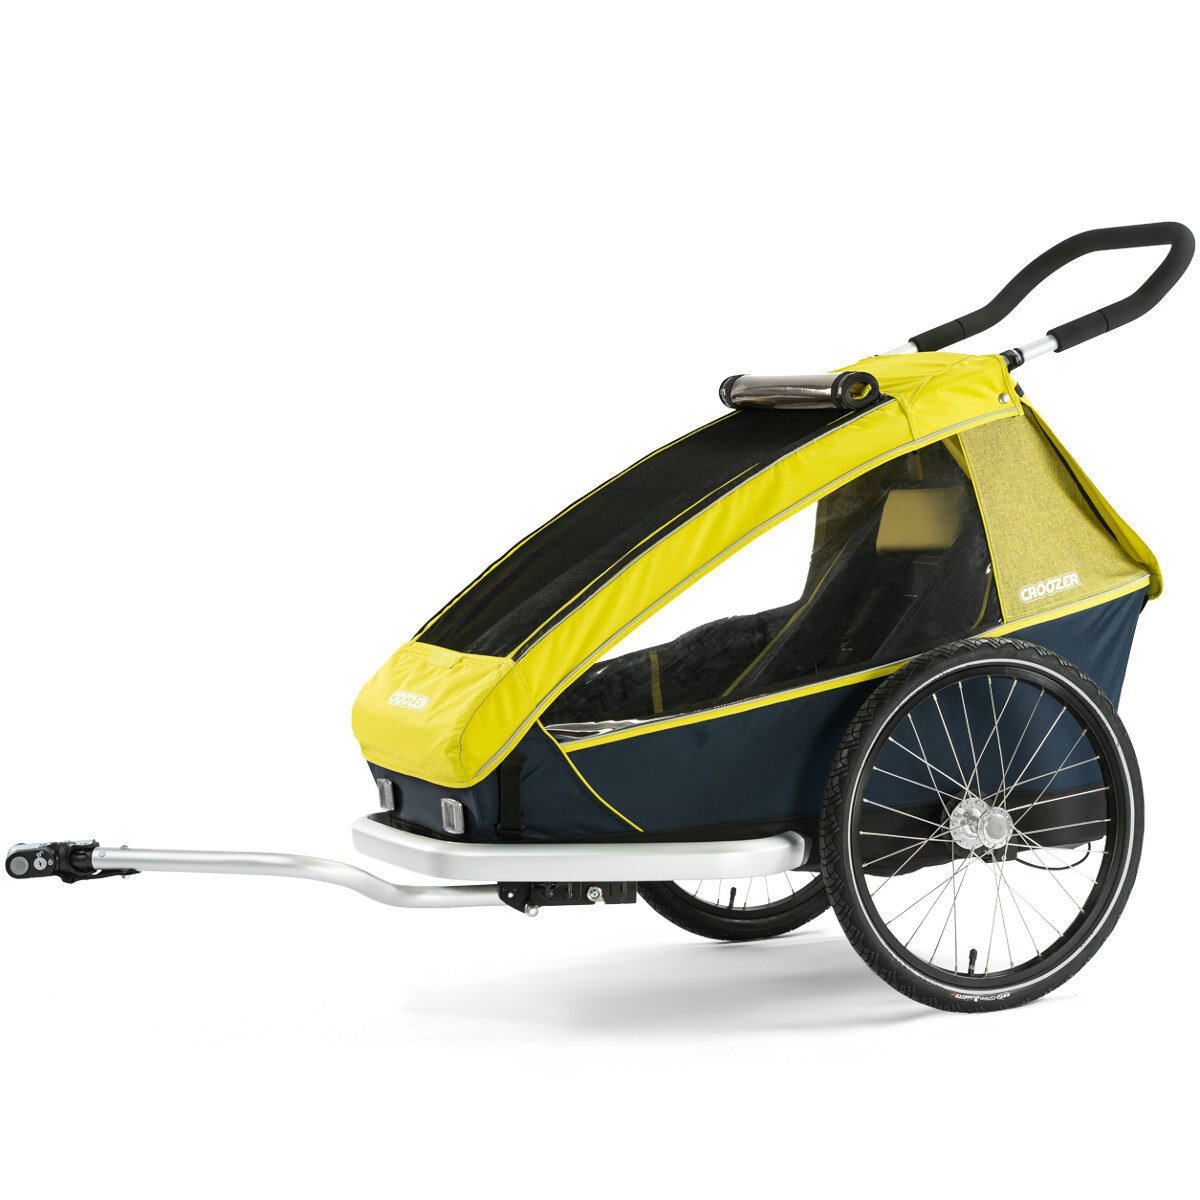 Croozer Kid for 1 Modell 2019 3in1 Set Fahrradanhänger